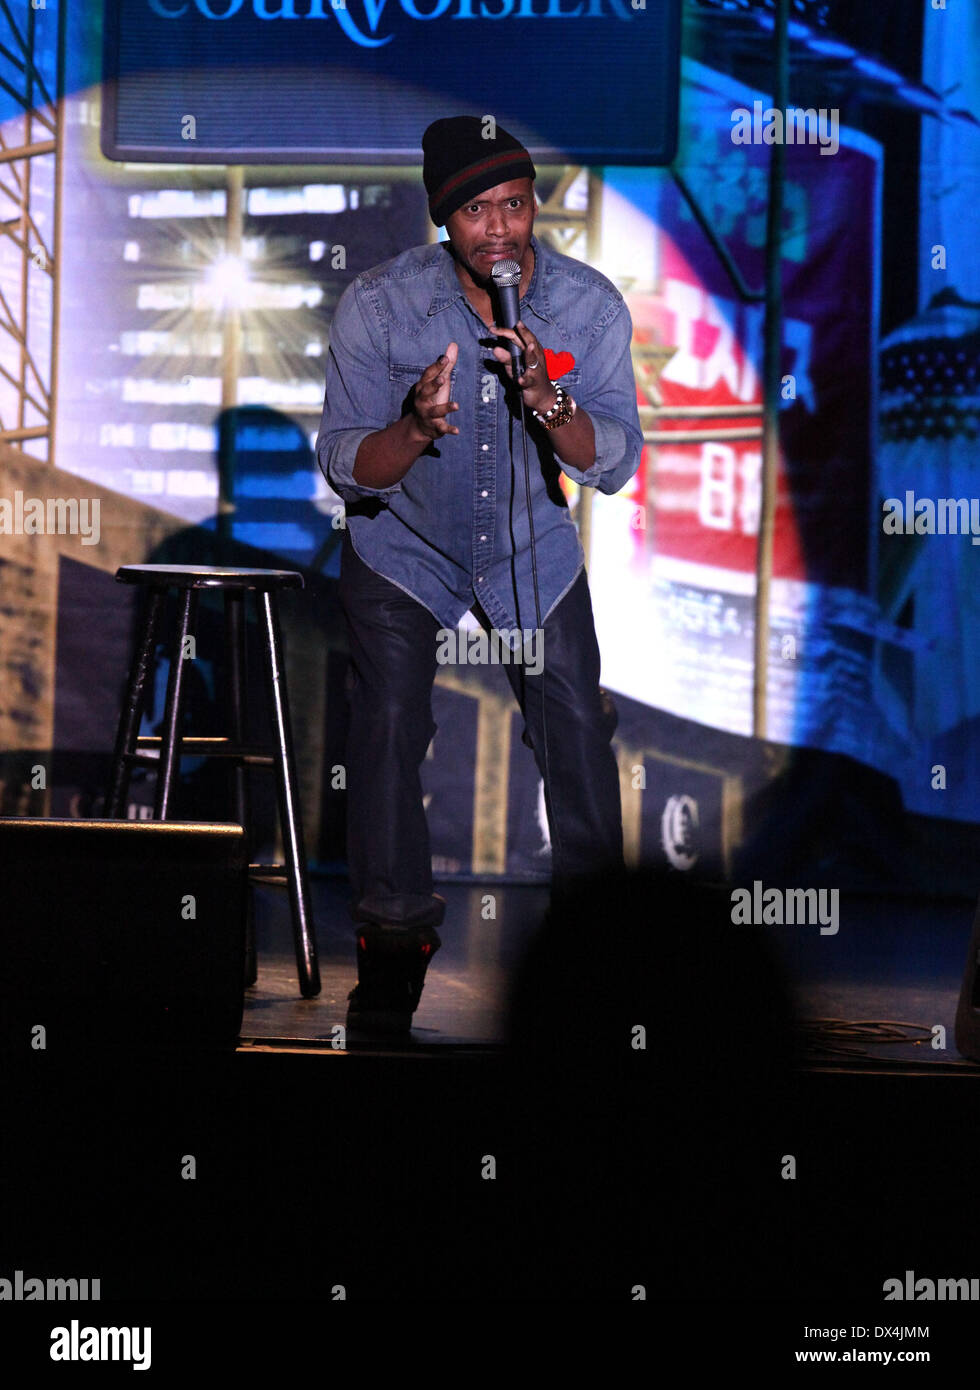 Lavar Walker Best Buy Theater And C By Courvoisier Present Shaquille